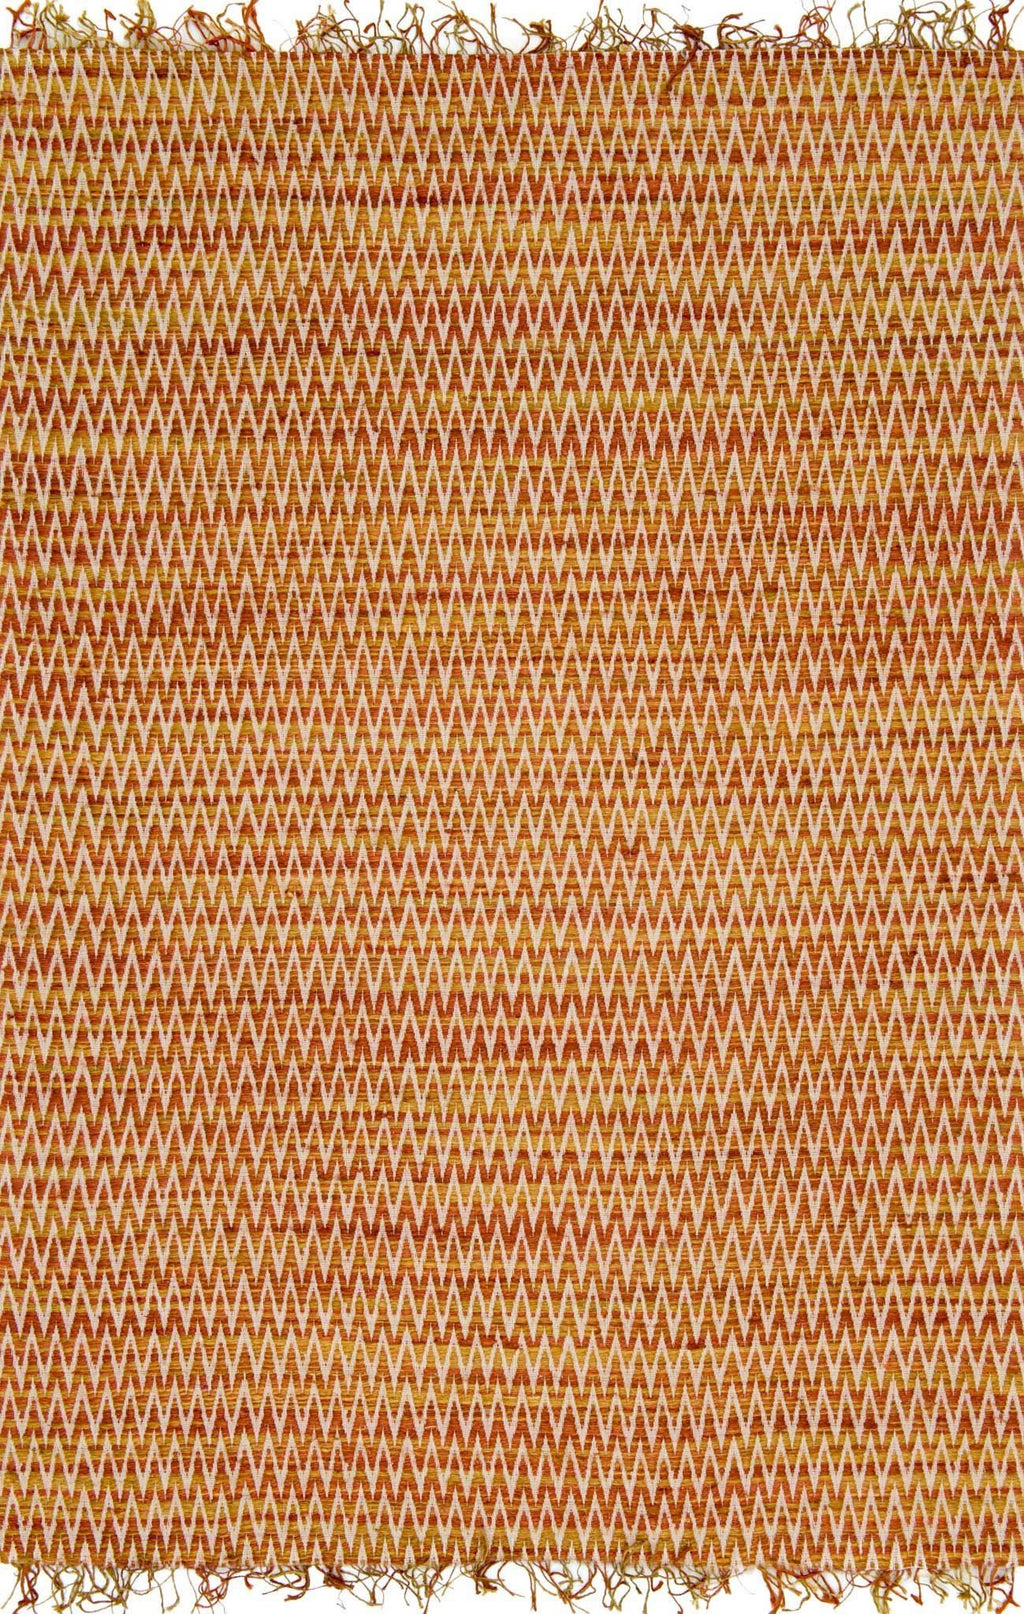 Orange & Yellow Handwoven Viscose Area Rug - Gerald - Upper Earth